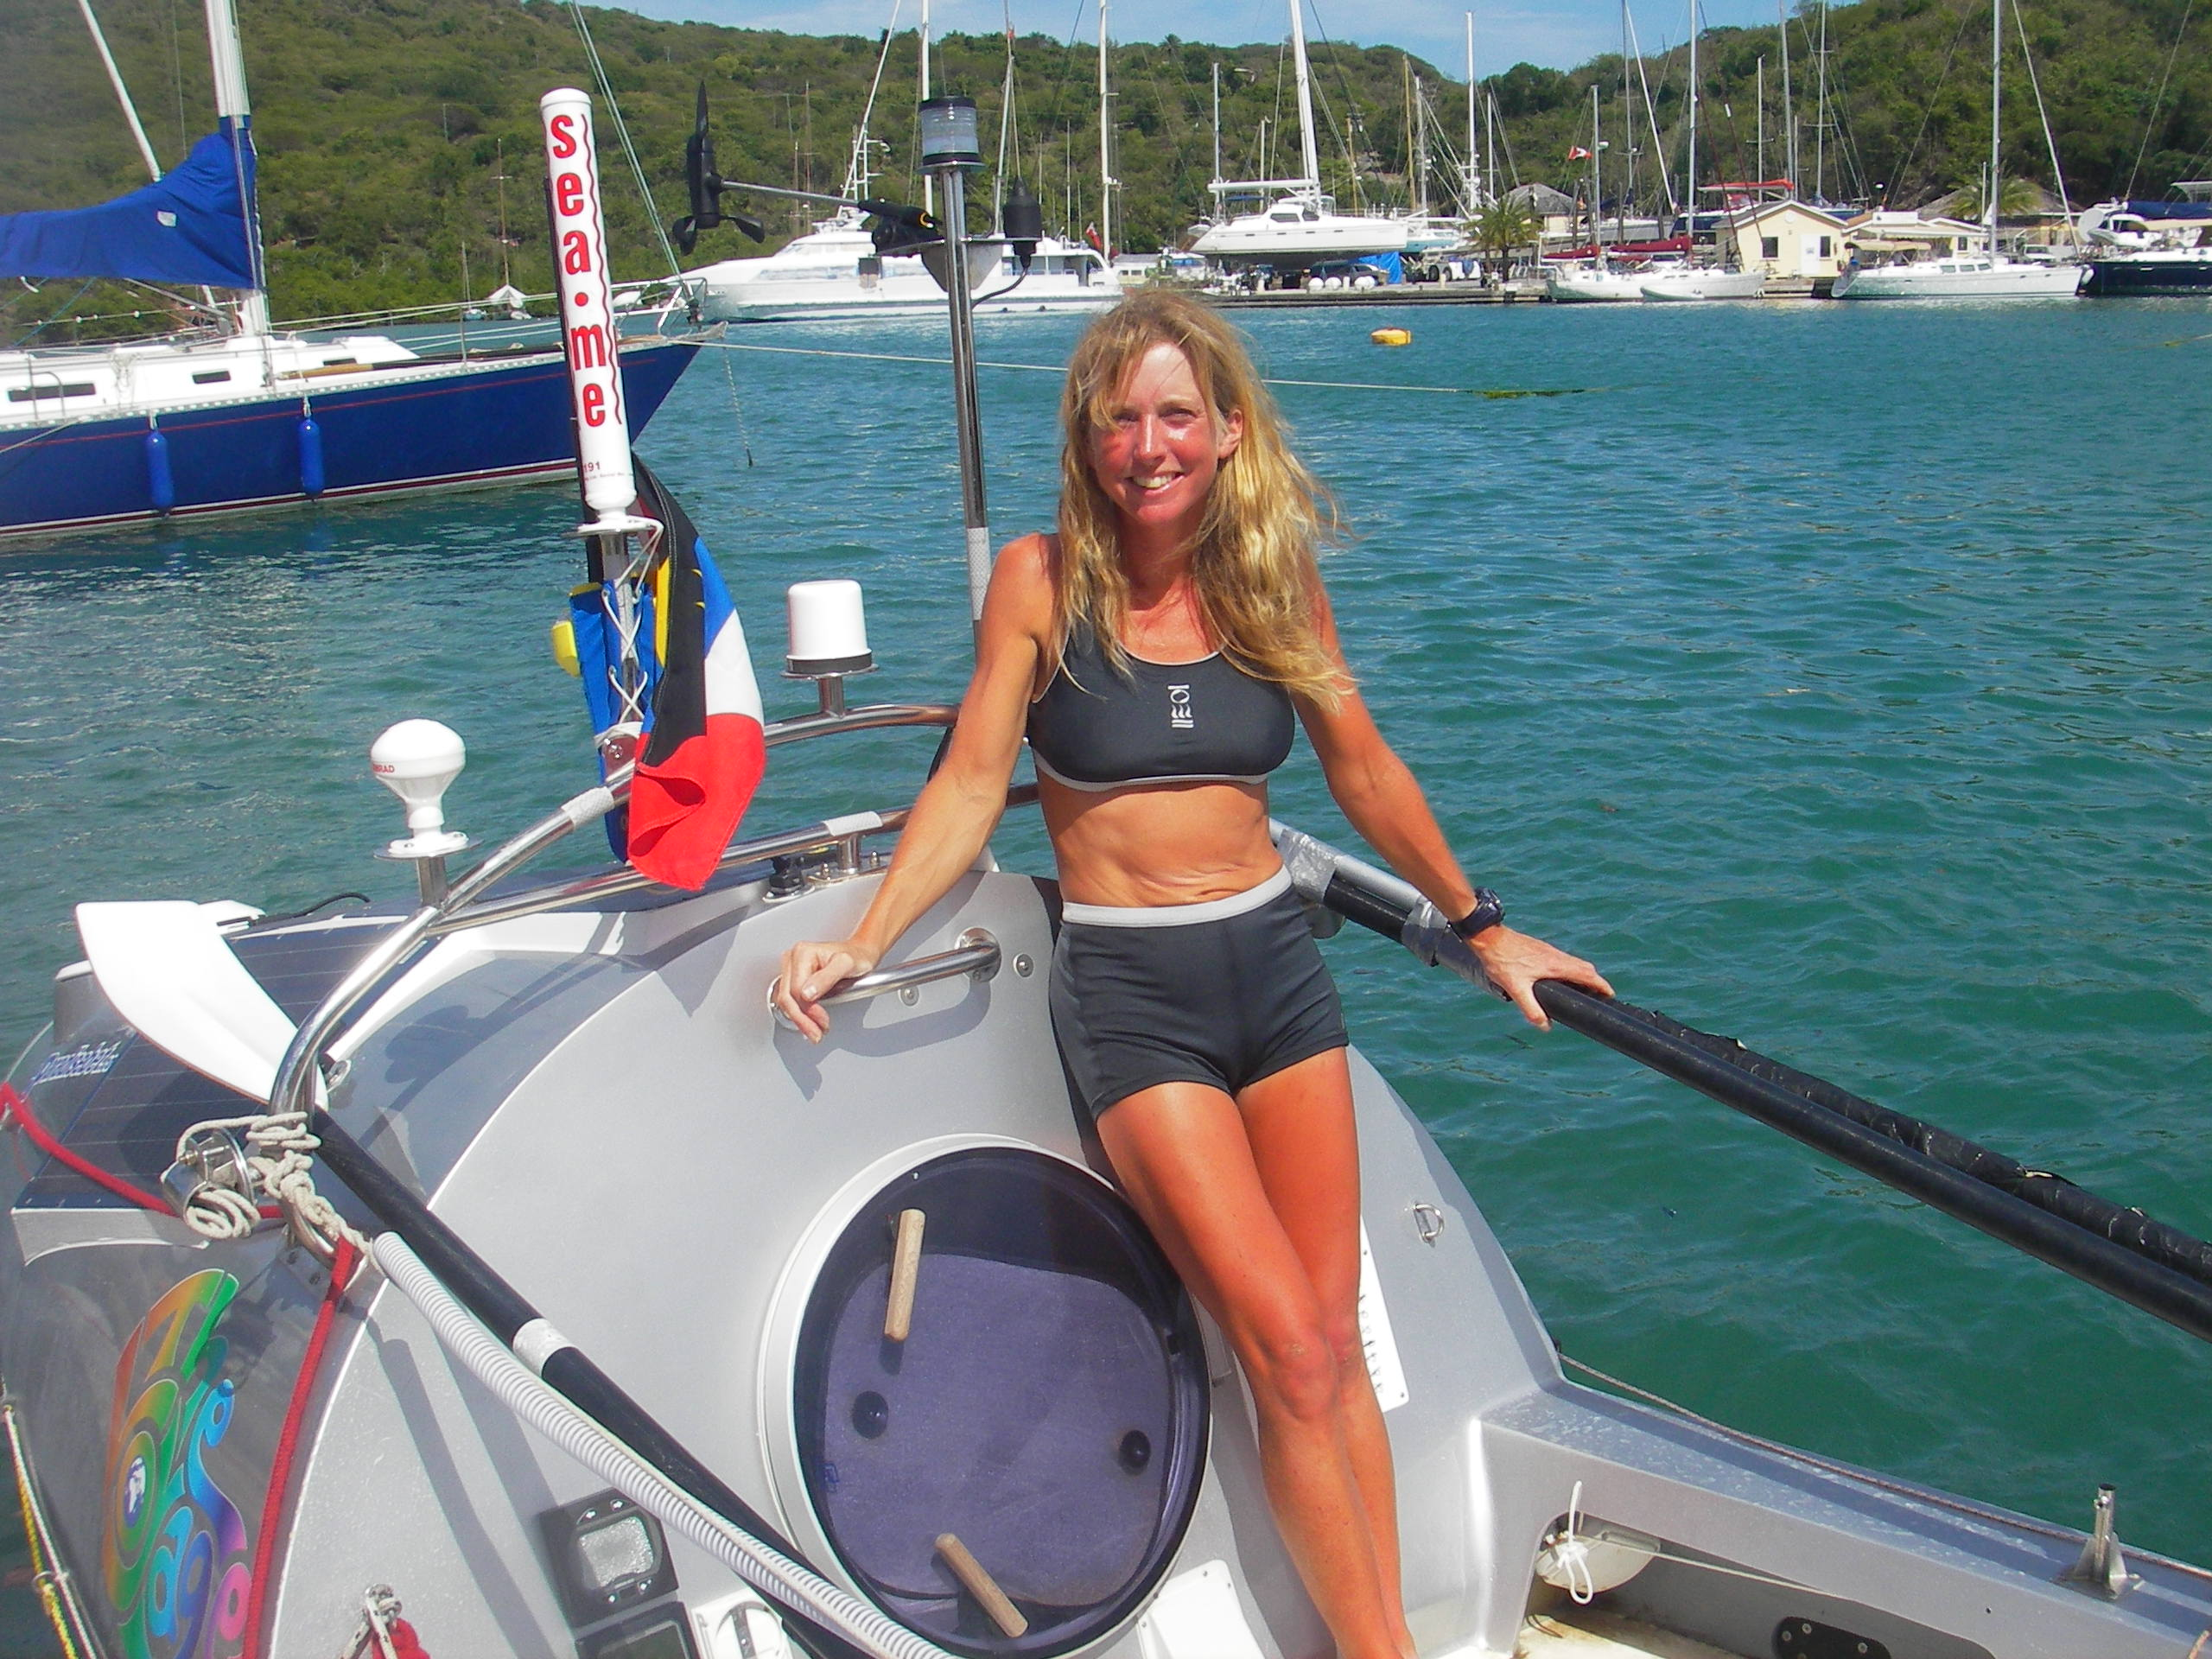 In 2005, Roz Savage rowed 3000 miles across the Atlantic Ocean - solo. Here she is on board Sedna Solo in Antigua. (Photo by Rita Savage)